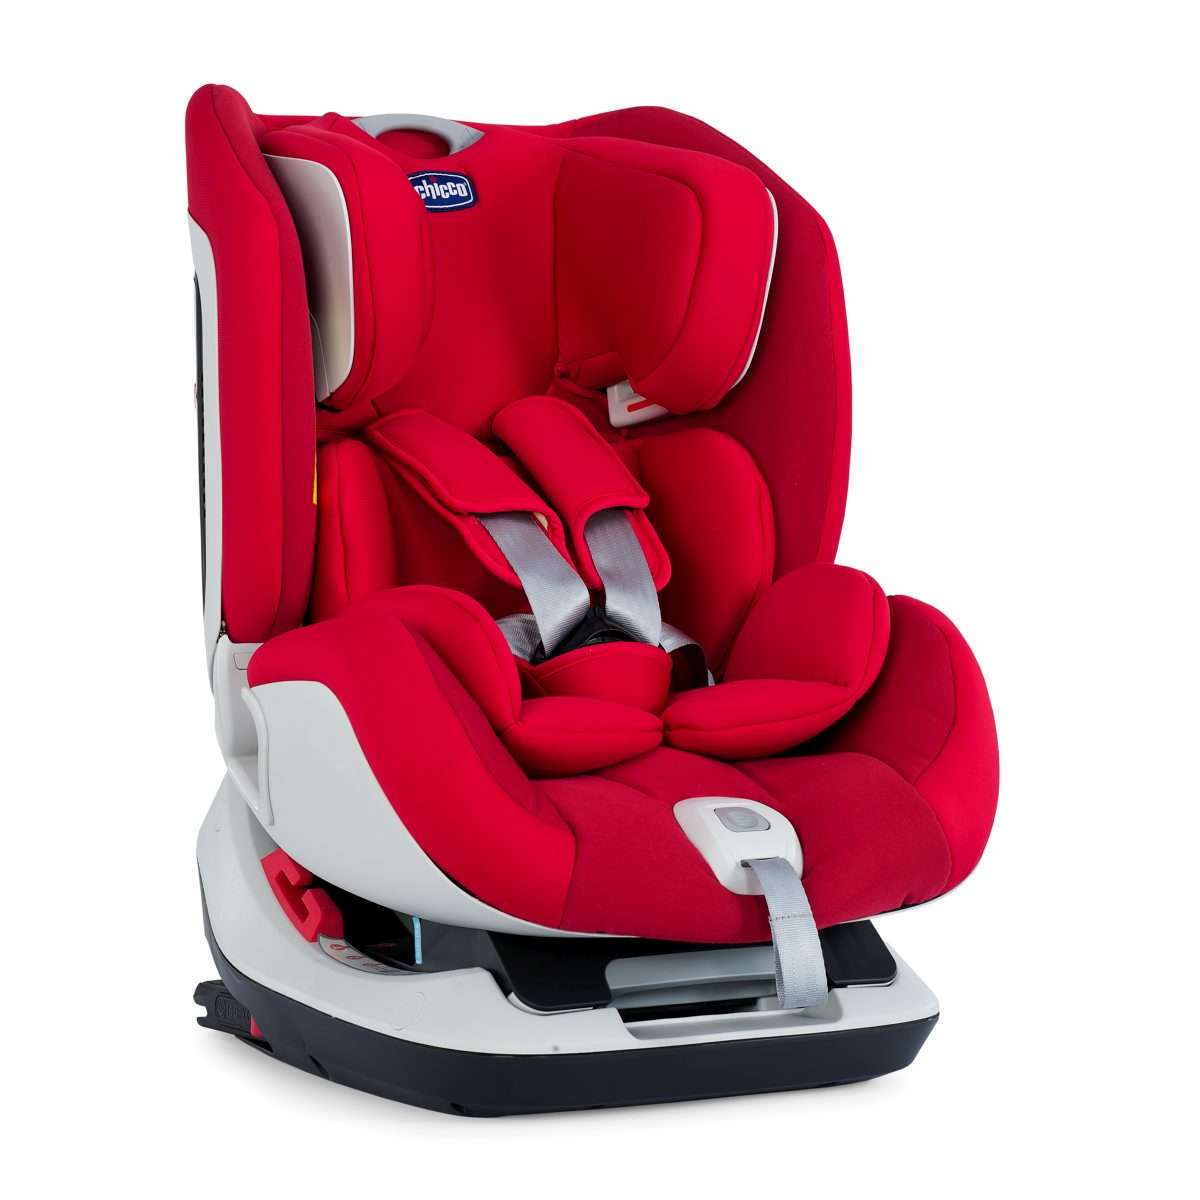 Sedia Per Bambini Auto Seat Up 012 Gr 1 2 Sicurezza In Auto Chicco It